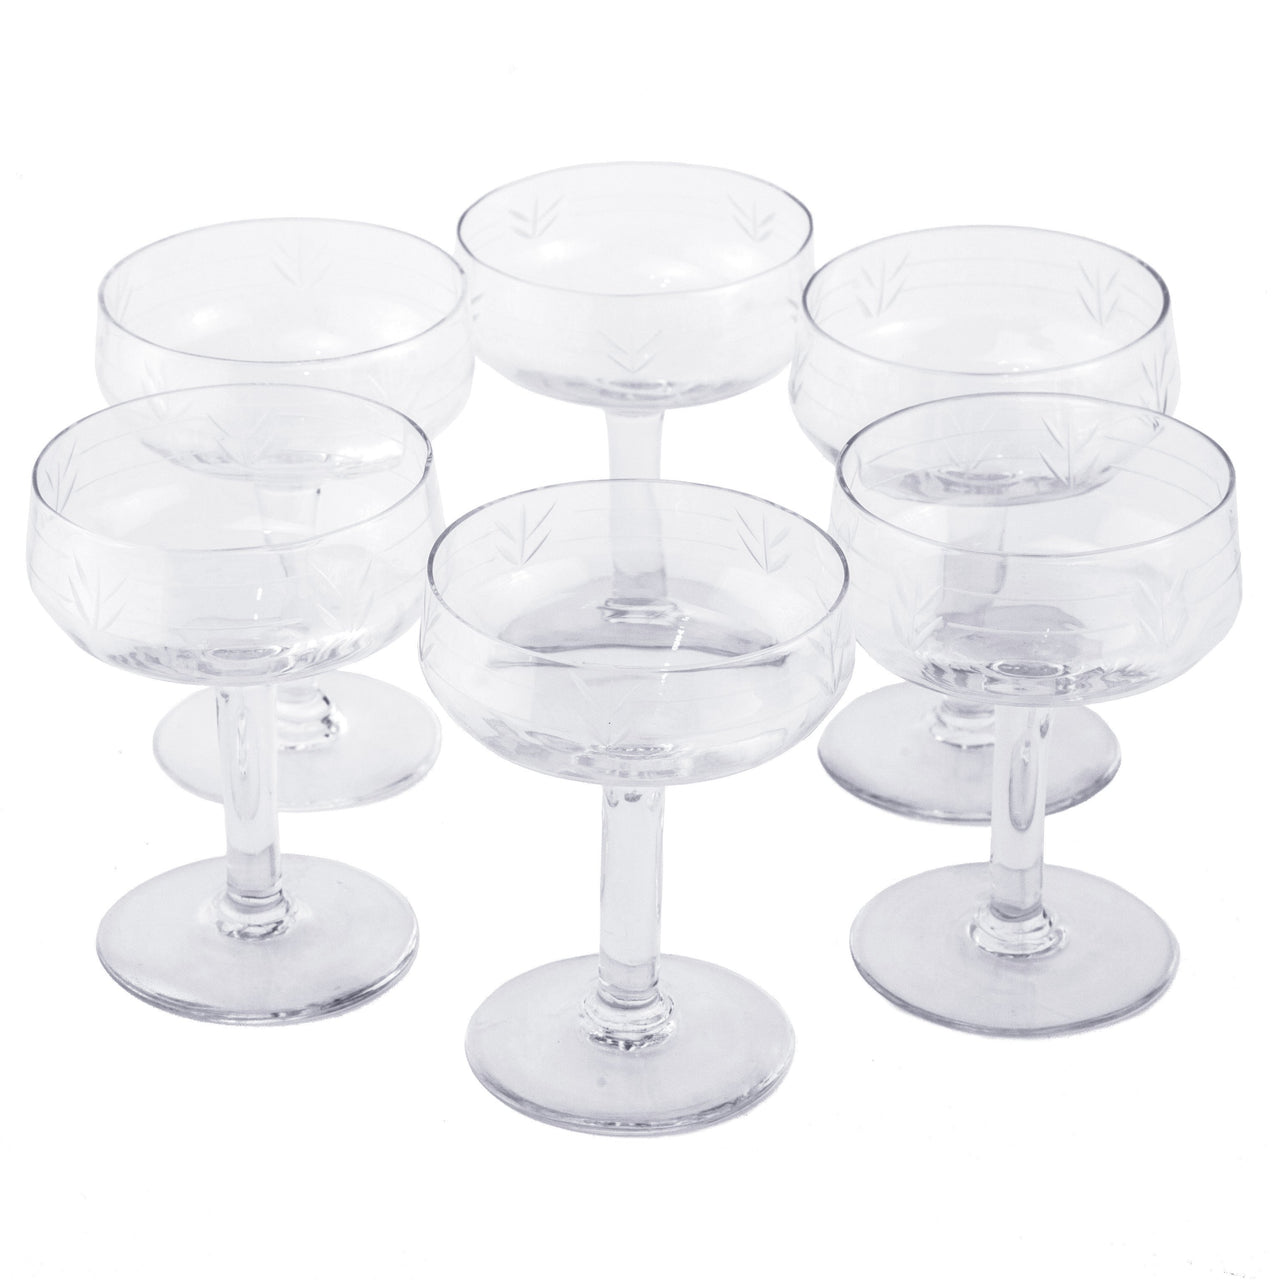 French Etched Paneled Coupe Glasses | The Hour Shop Vintage